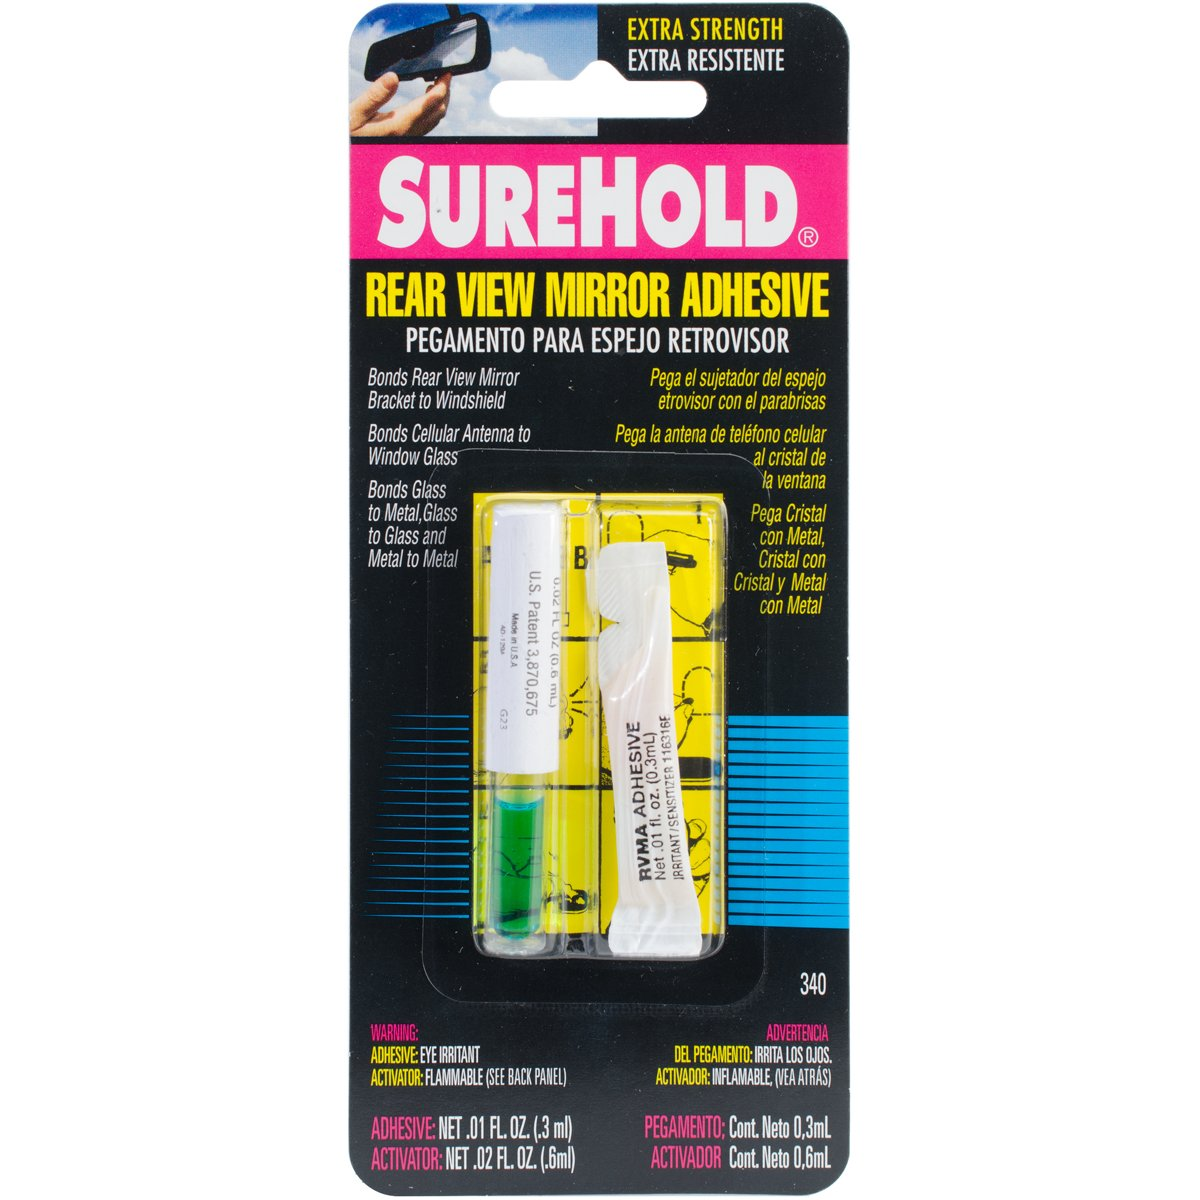 Surehold SH-340 Rear View Mirror Adhesive